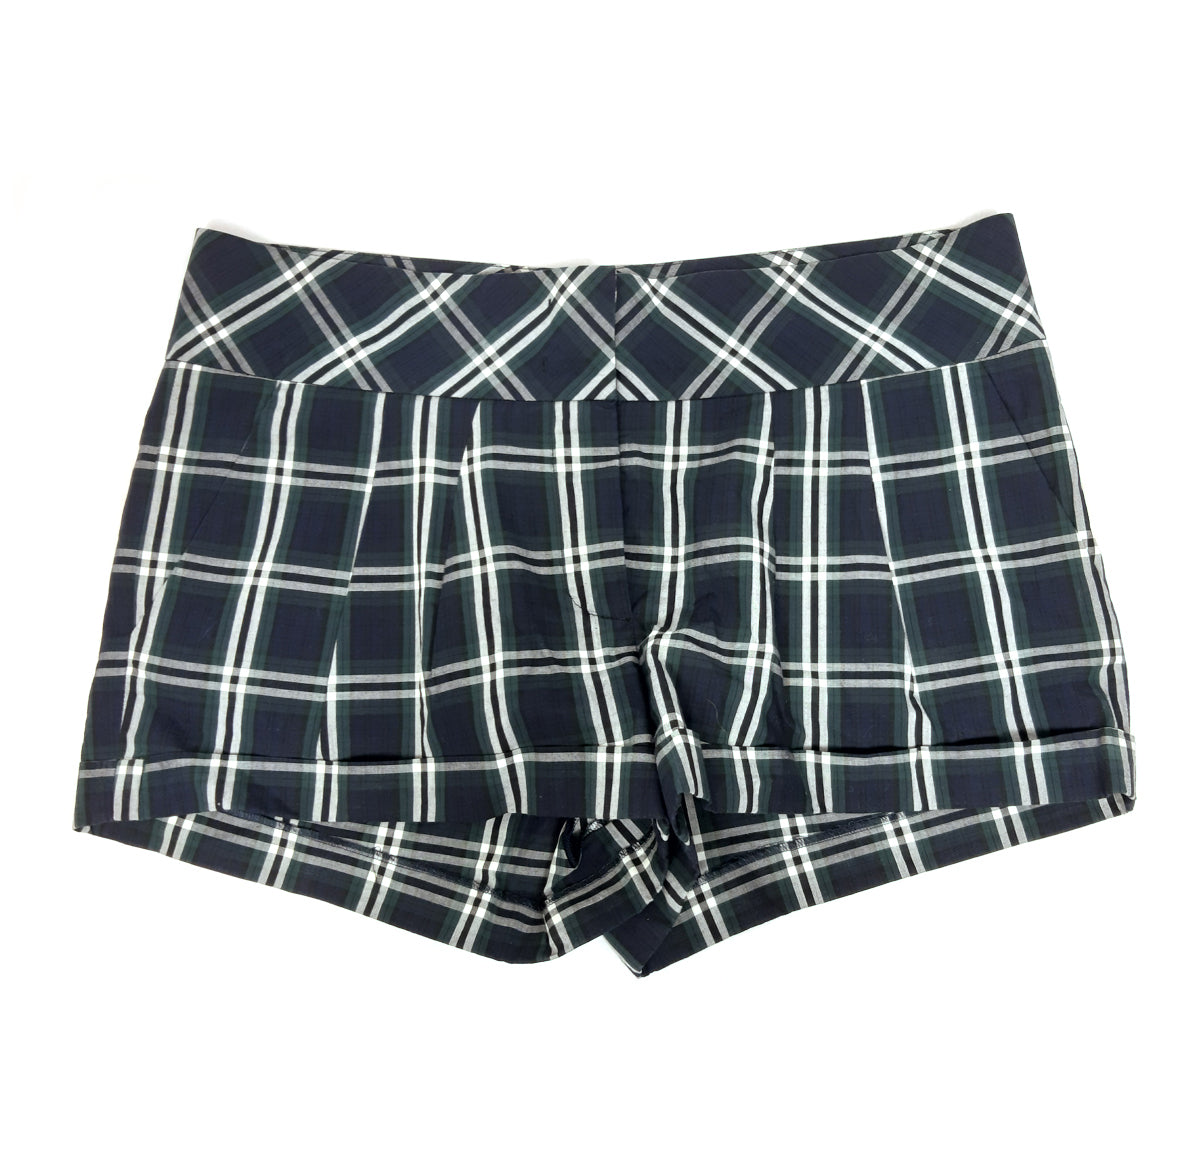 Joseph Plaid Shorts in Blue, Green and White Size 40 (EU)